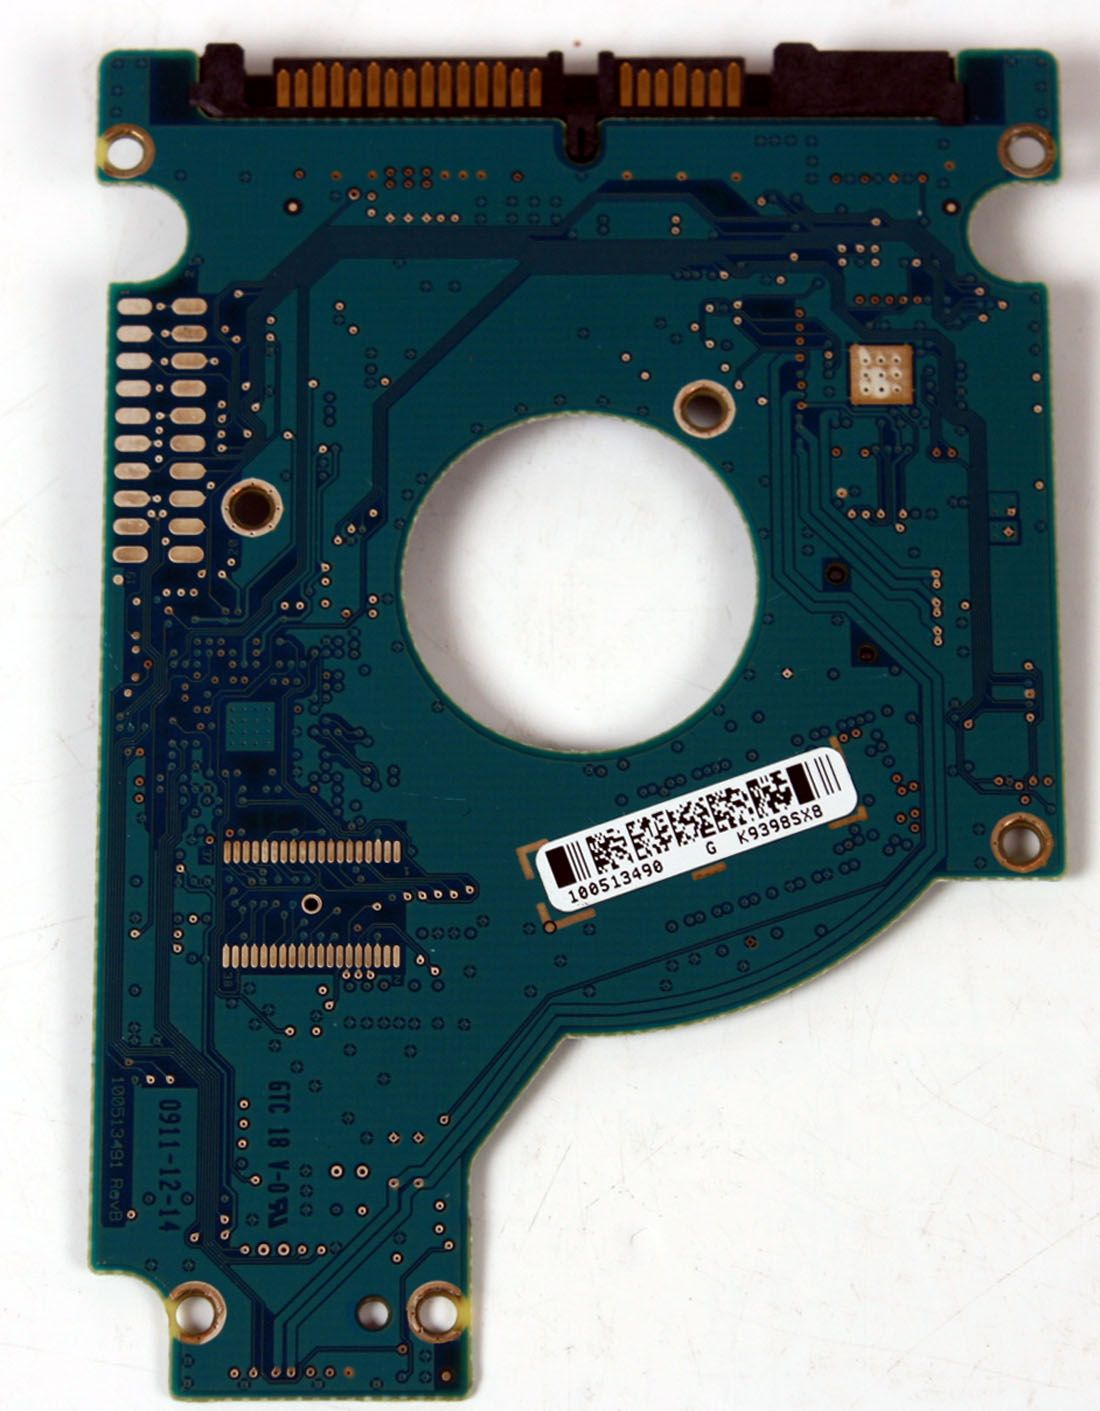 SEAGATE ST9160310AS 160GB 2,5 SATA HARD DRIVE / PCB (CIRCUIT BOARD) ONLY FOR DATA